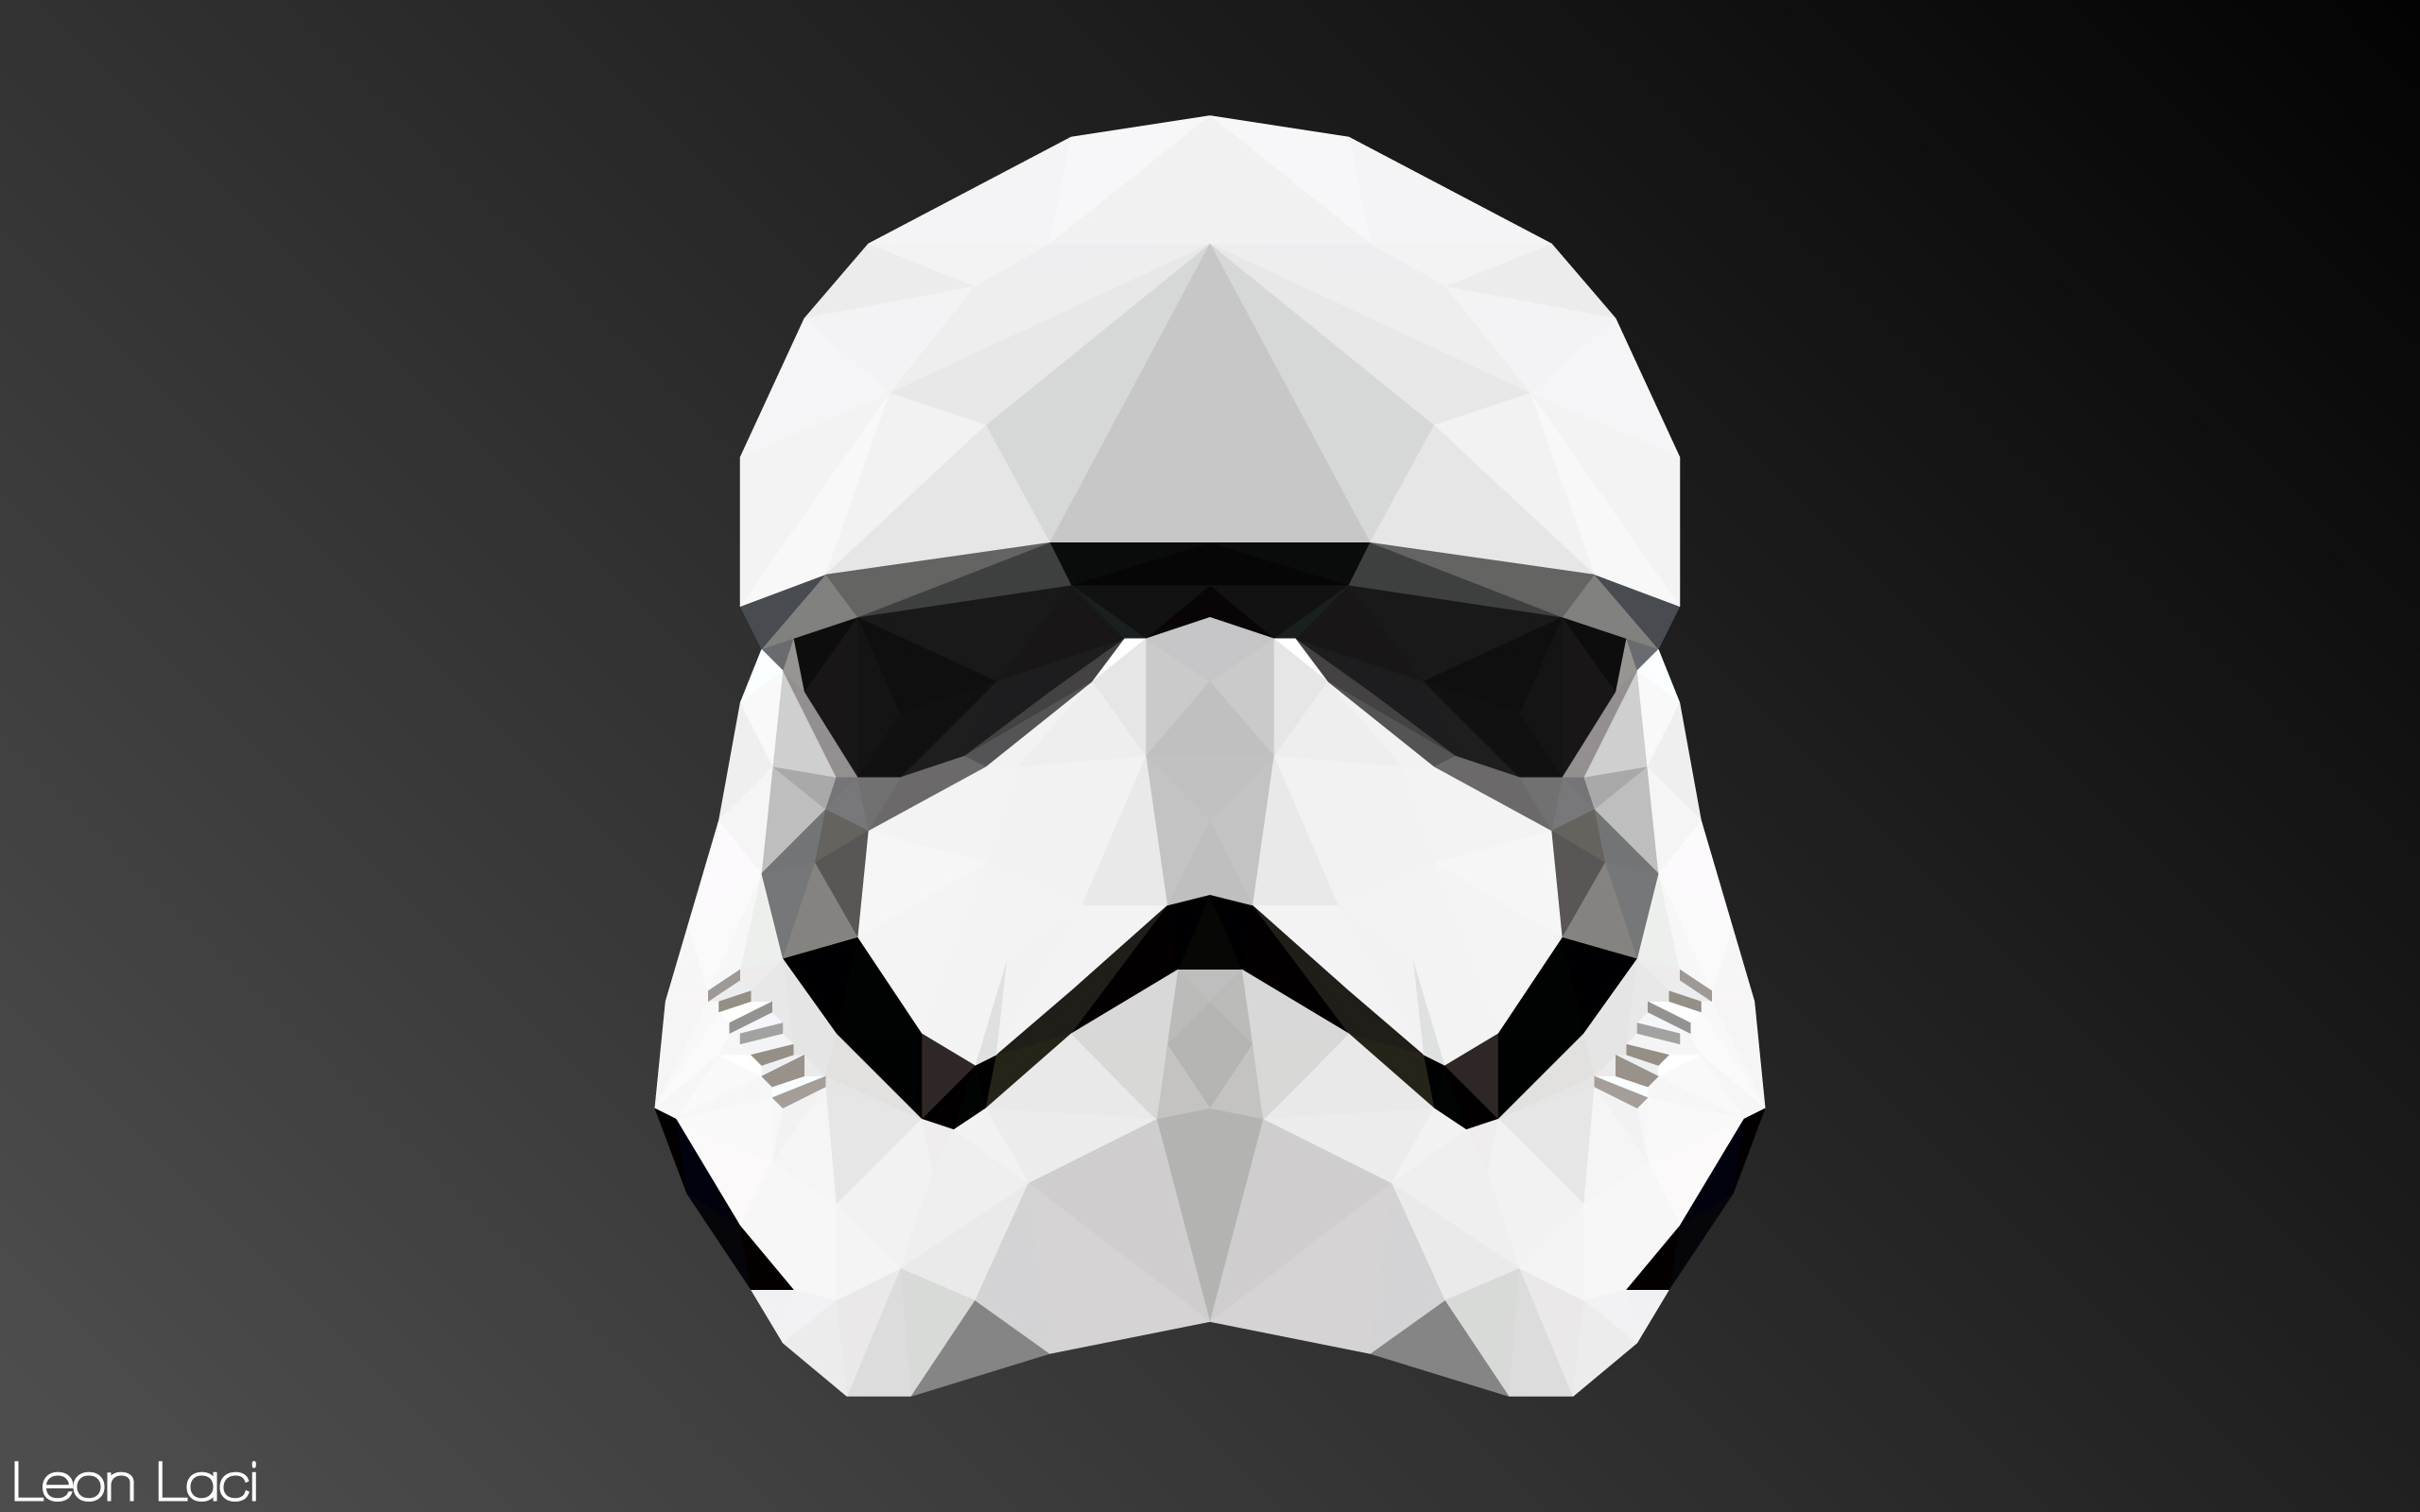 Darth Vader Iphone Wallpaper Hd Stormtrooper Helmet Low Poly 2560x1600 Wallpapers